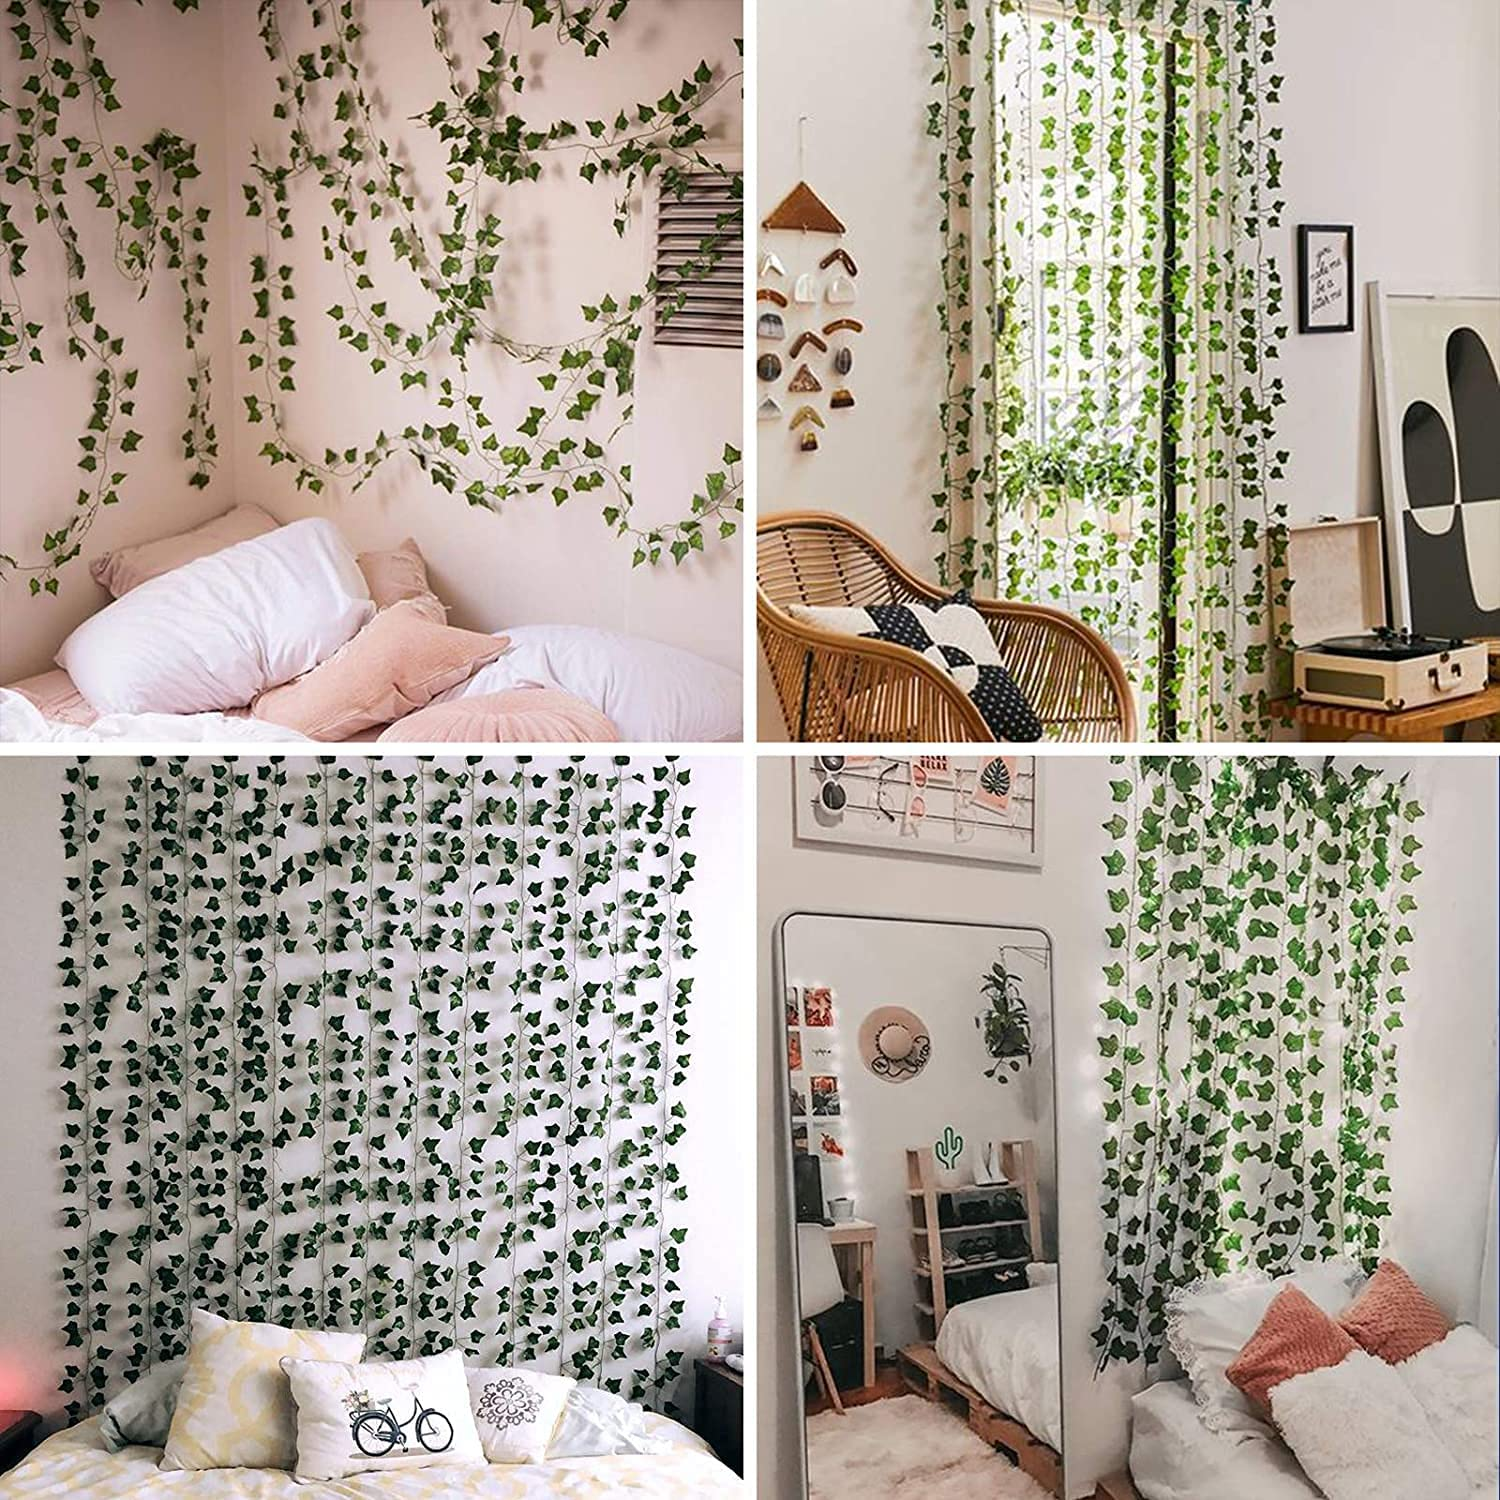 HATOKU 20 Pack Fake Ivy Garland Fake Vines Artificial Ivy, Fake Leaves  Greenery Hanging Plants for Wedding Wall Decor, Party Room Aesthetic Decor,  20 ...